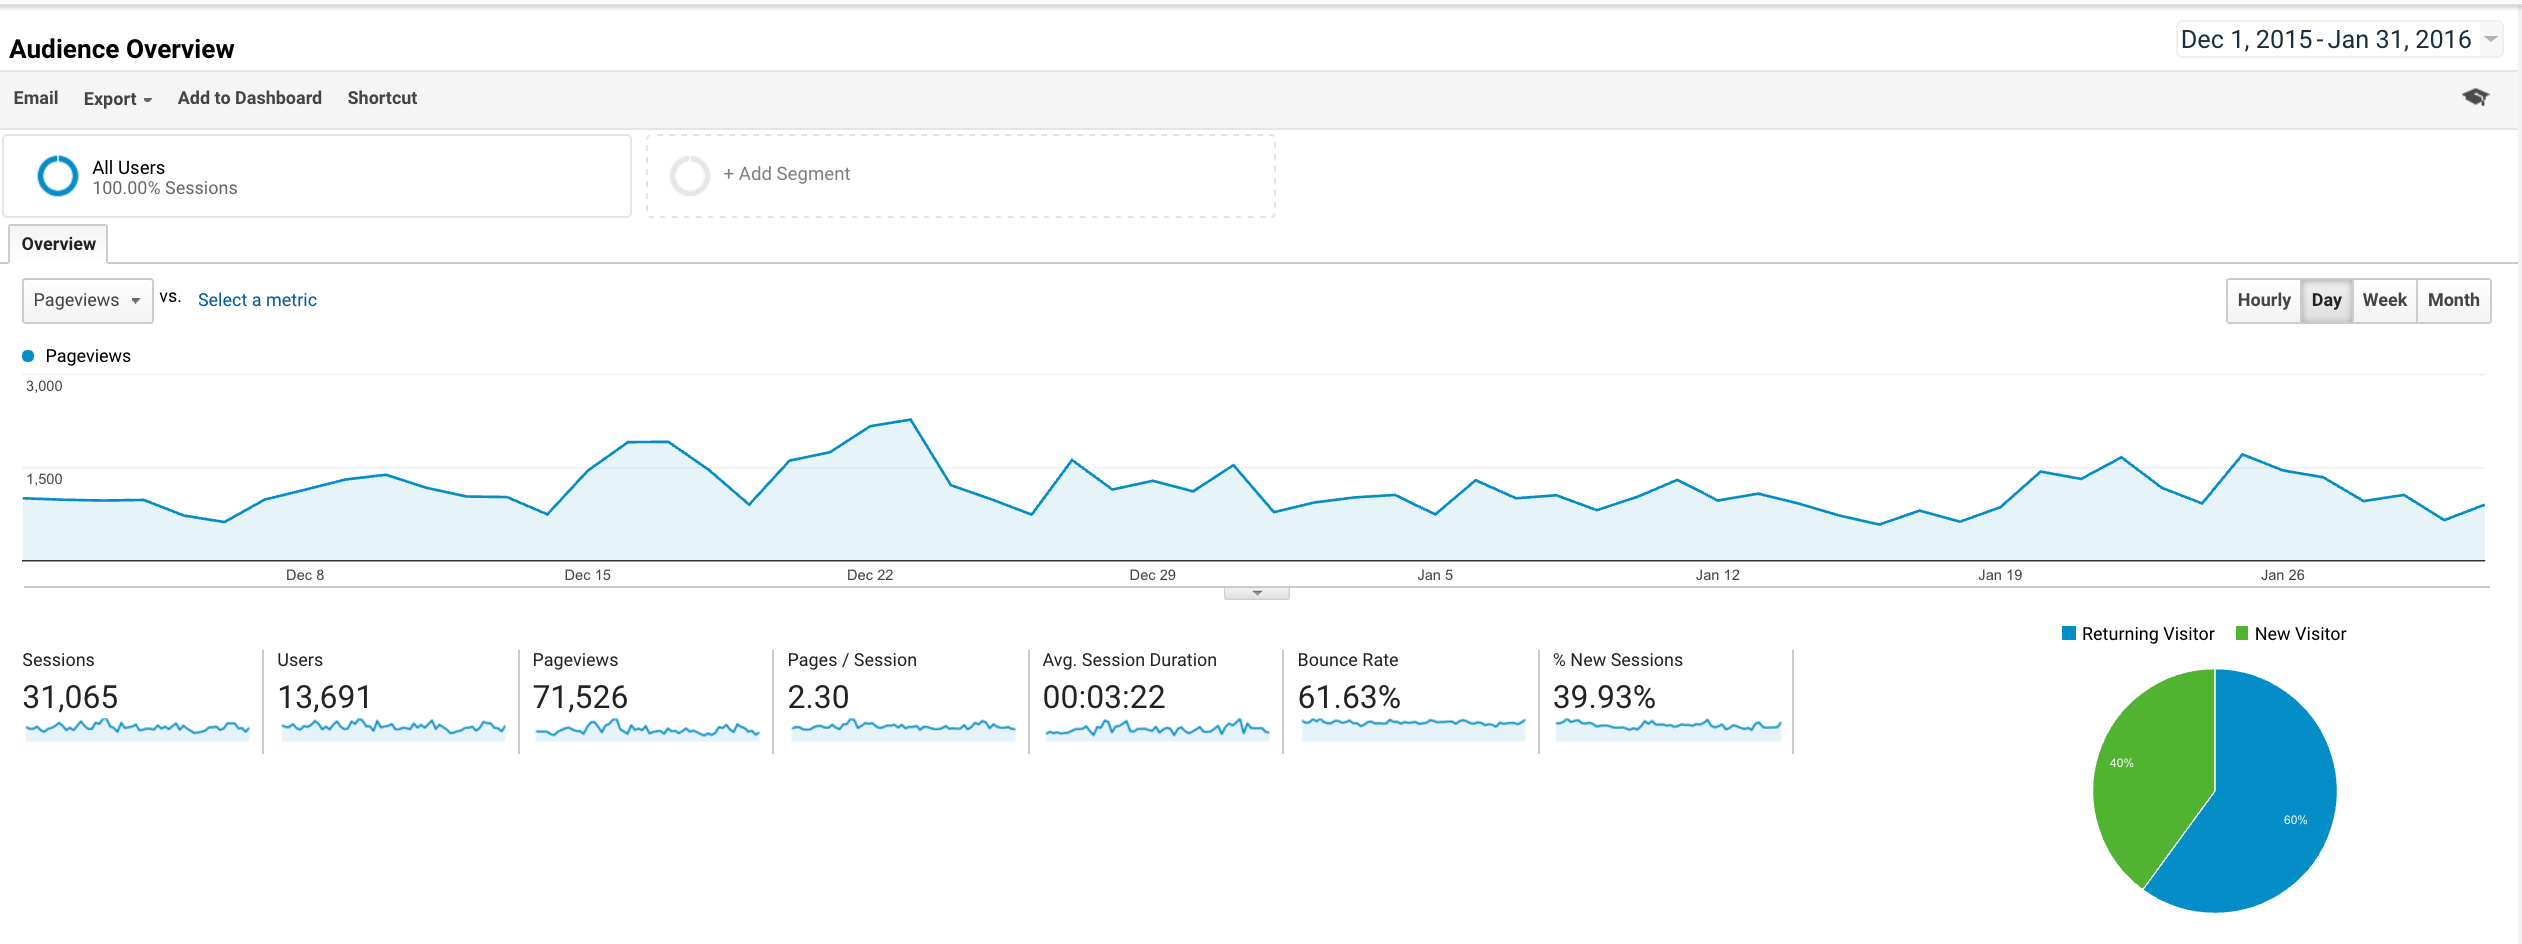 Google Analytics for end of 2015 Giving Season